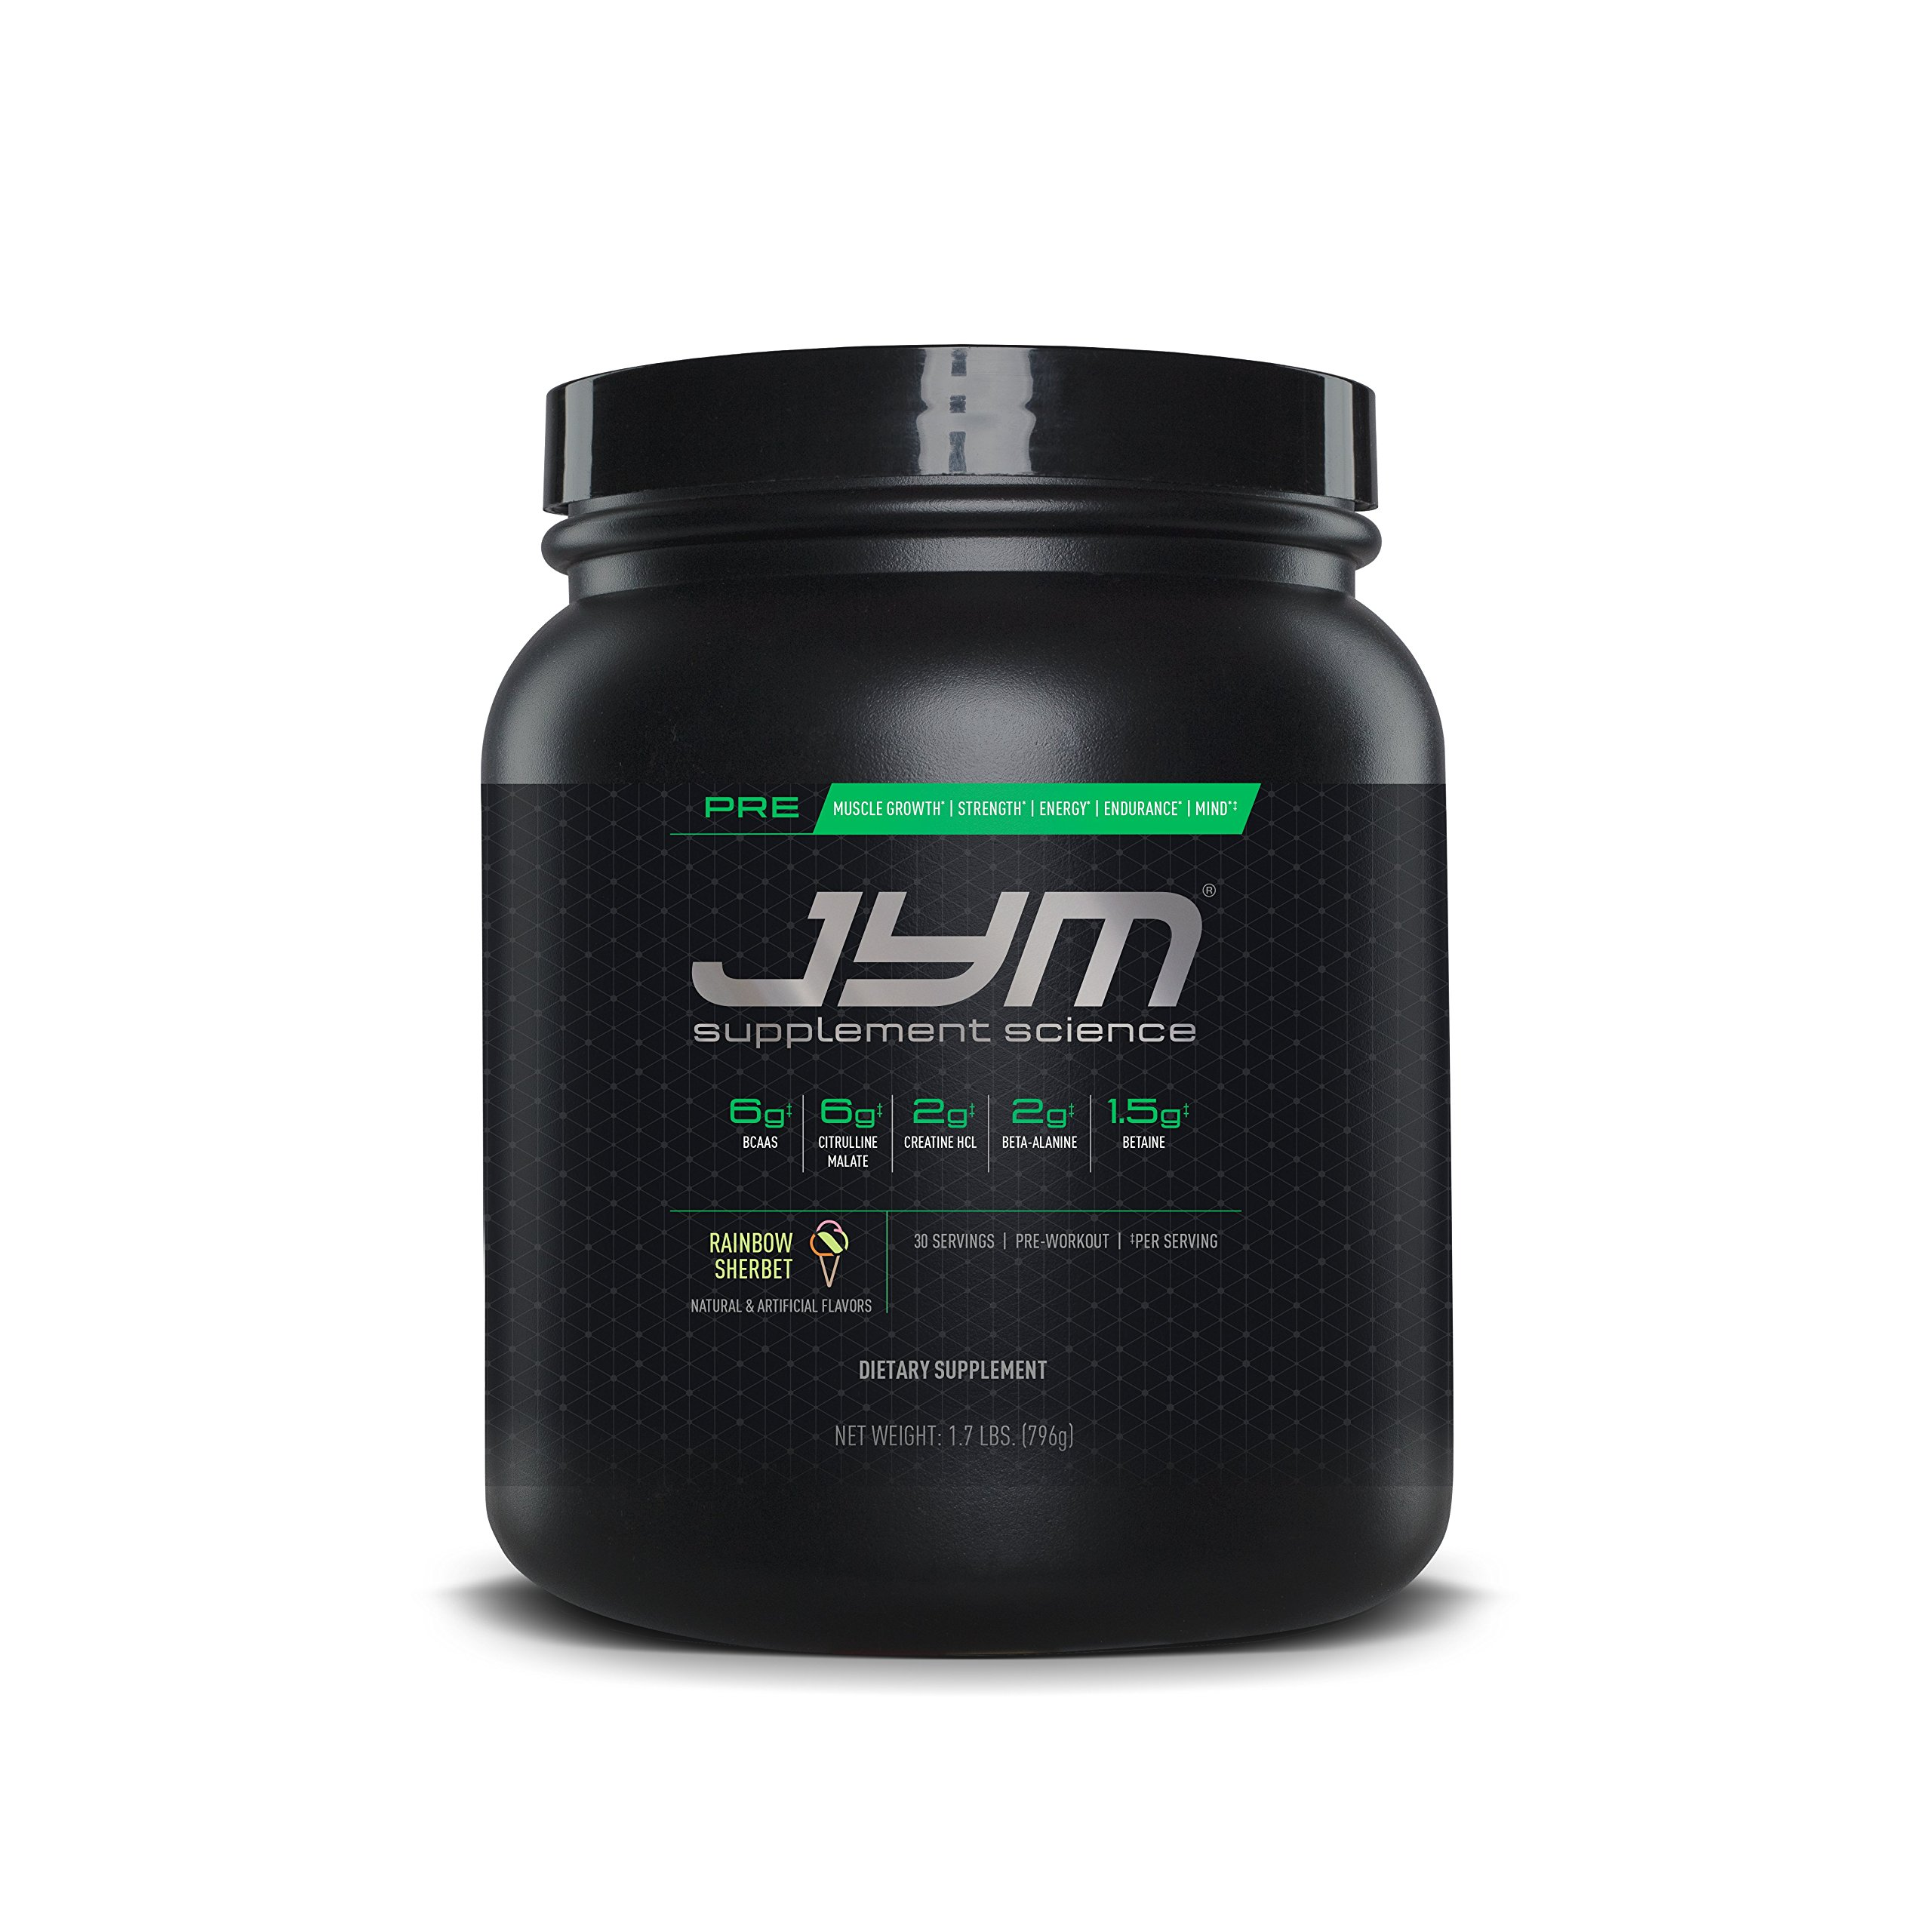 JYM Supplement Science, PRE JYM, Rainbow Sherbet, Pre-Workout with BCAA's, Creatine HCI, Citrulline Malate, Beta-Alanine, Betaine, Alpha-GPC, Beet Root Extract and More, 30 Servings